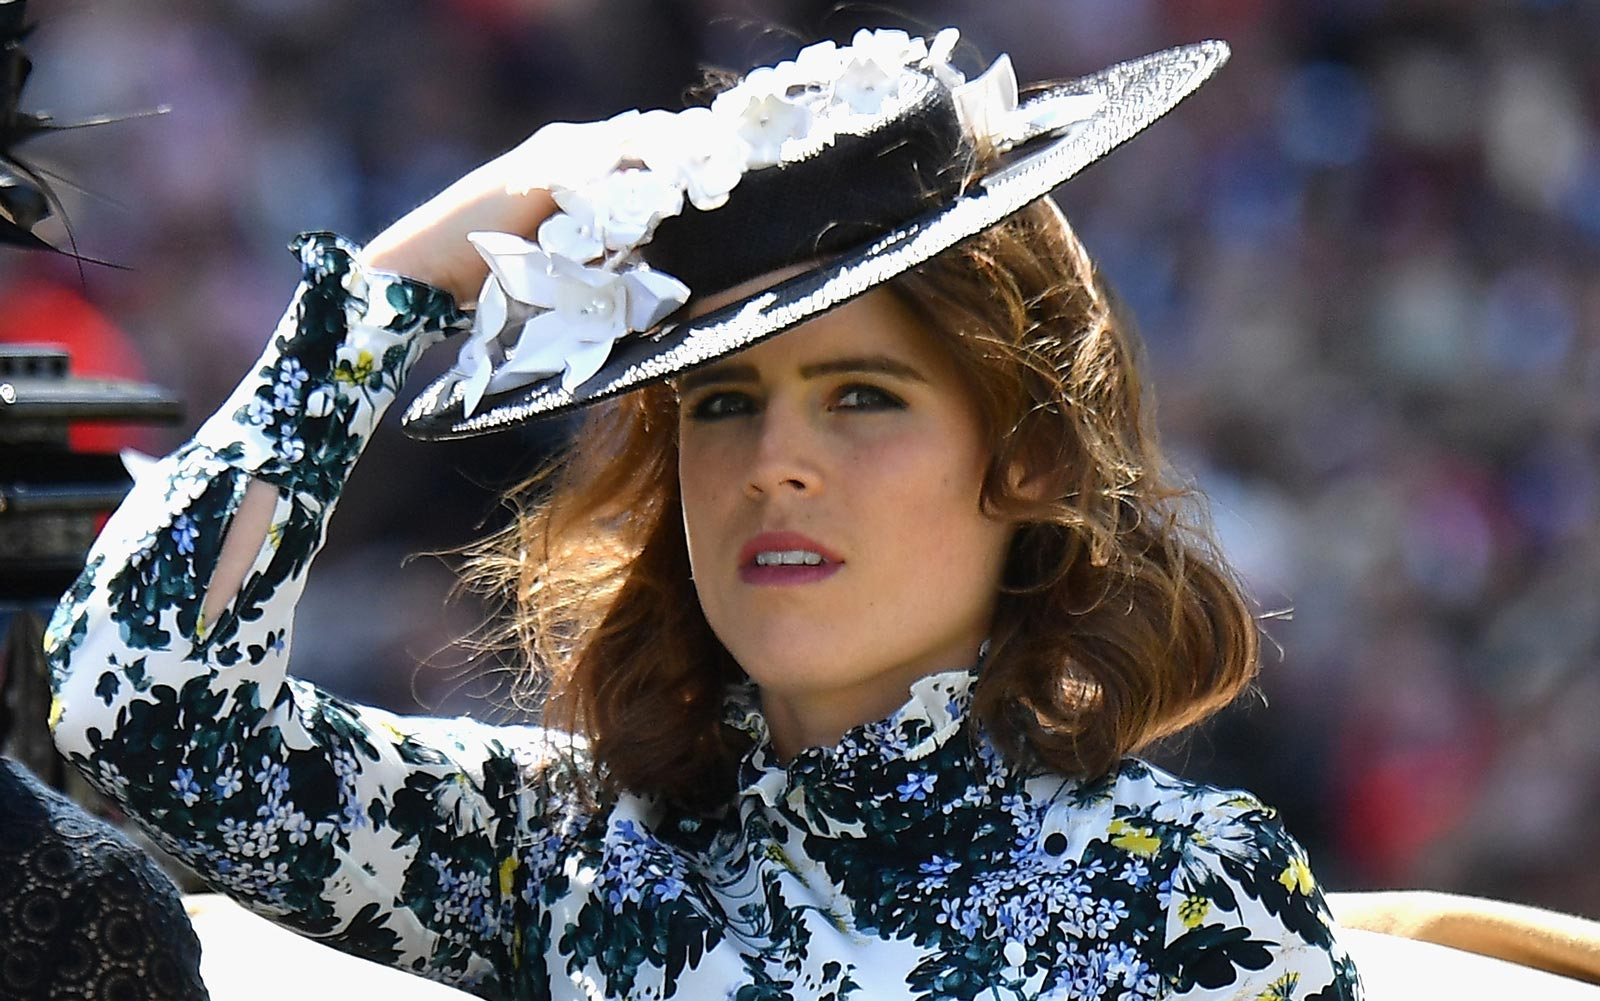 You Probably Won't Get to Watch Princess Eugenie's Royal Wedding on TV, Even Though She Wants You to